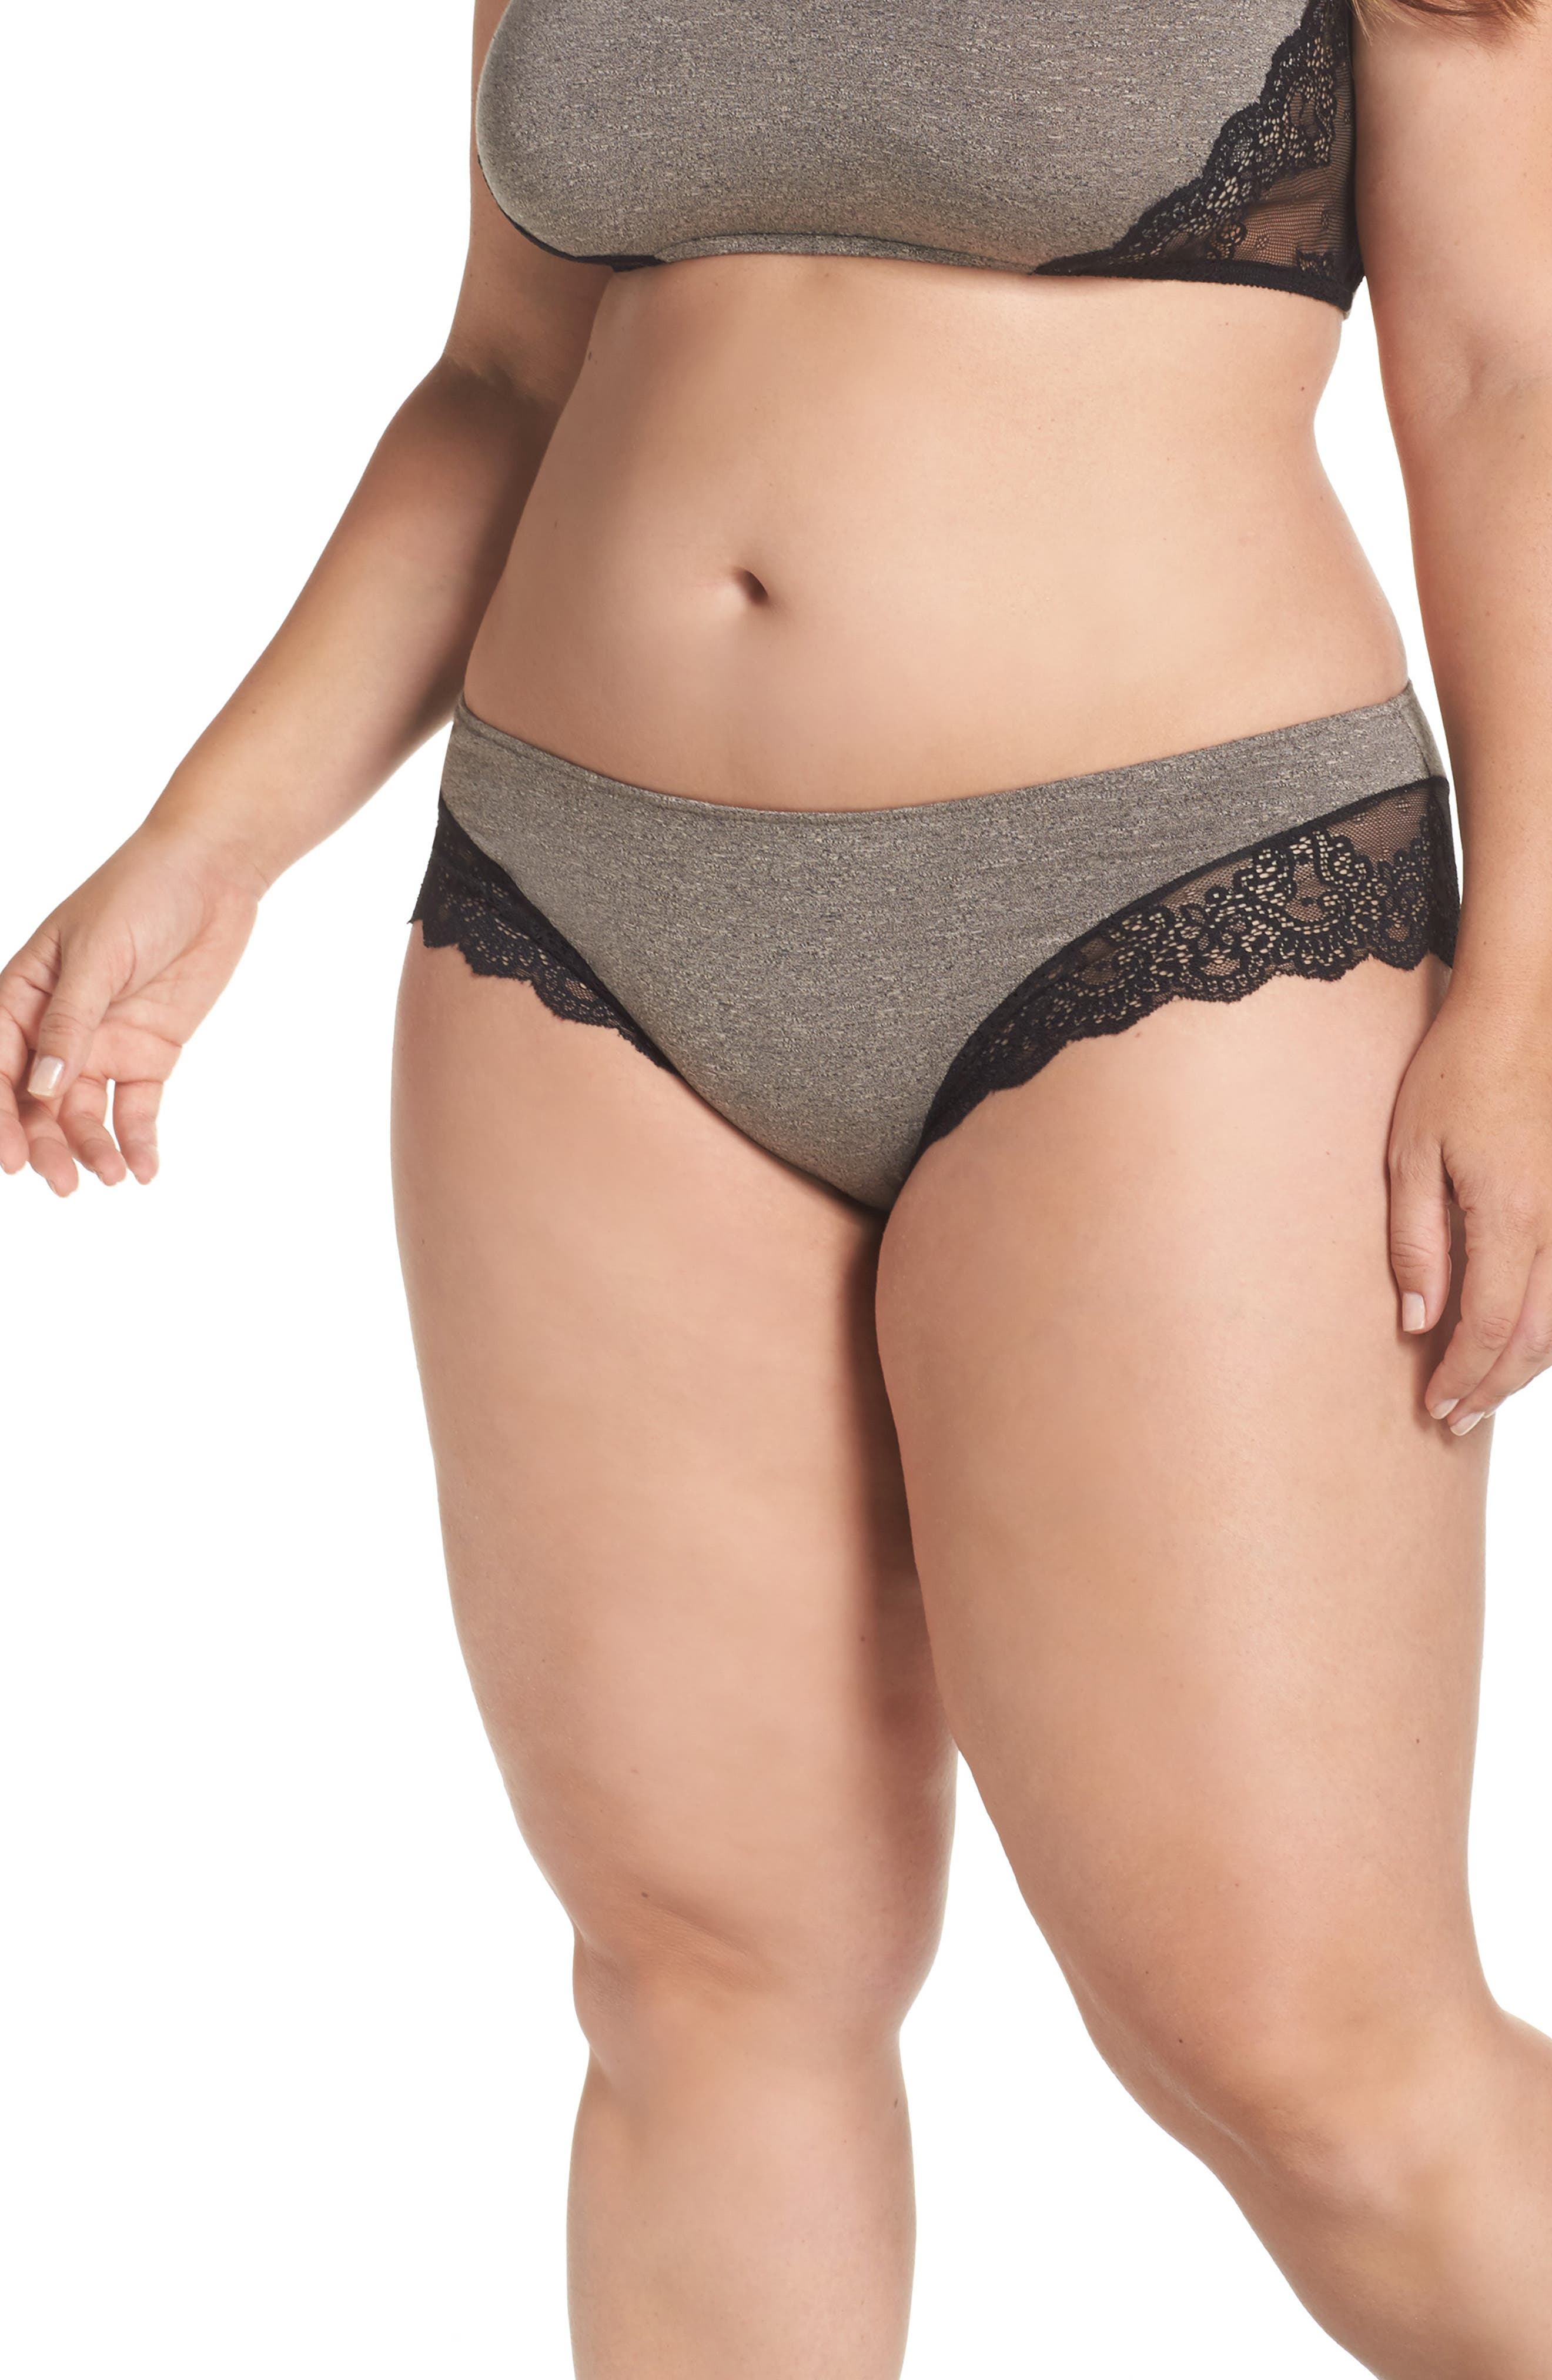 So Fine Hipster Panties,                         Main,                         color, Vintage Stone/ Black